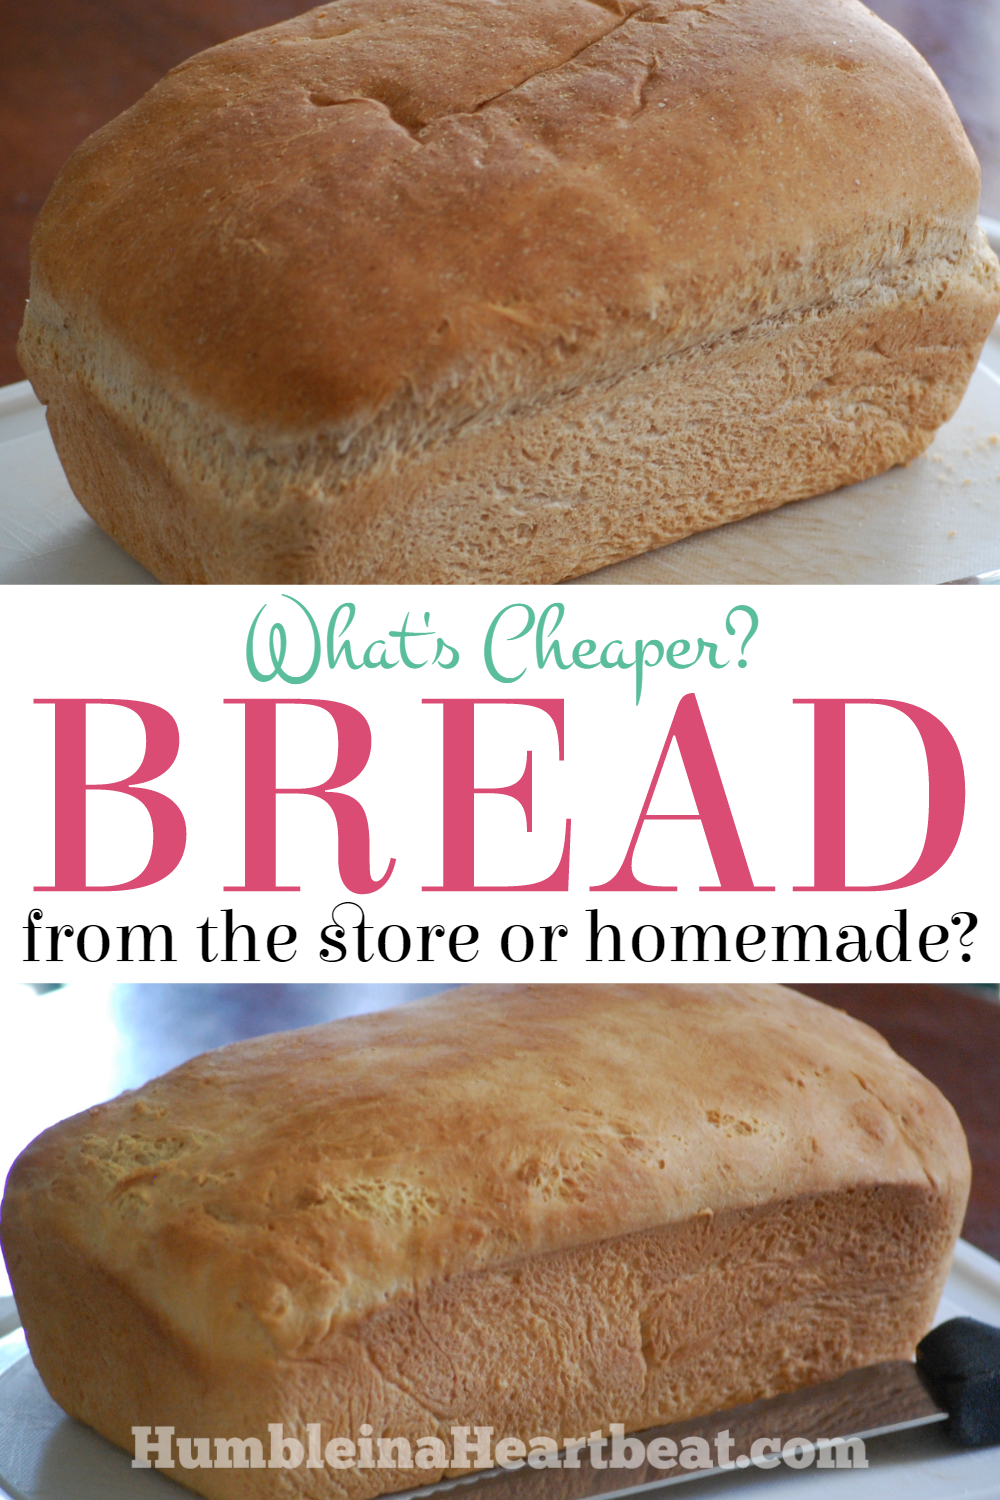 Ever wondered how much you could be saving if you made all your bread at home? Or what if it was really cheaper to buy it from the store? Here are some details to help you decide which is cheaper.